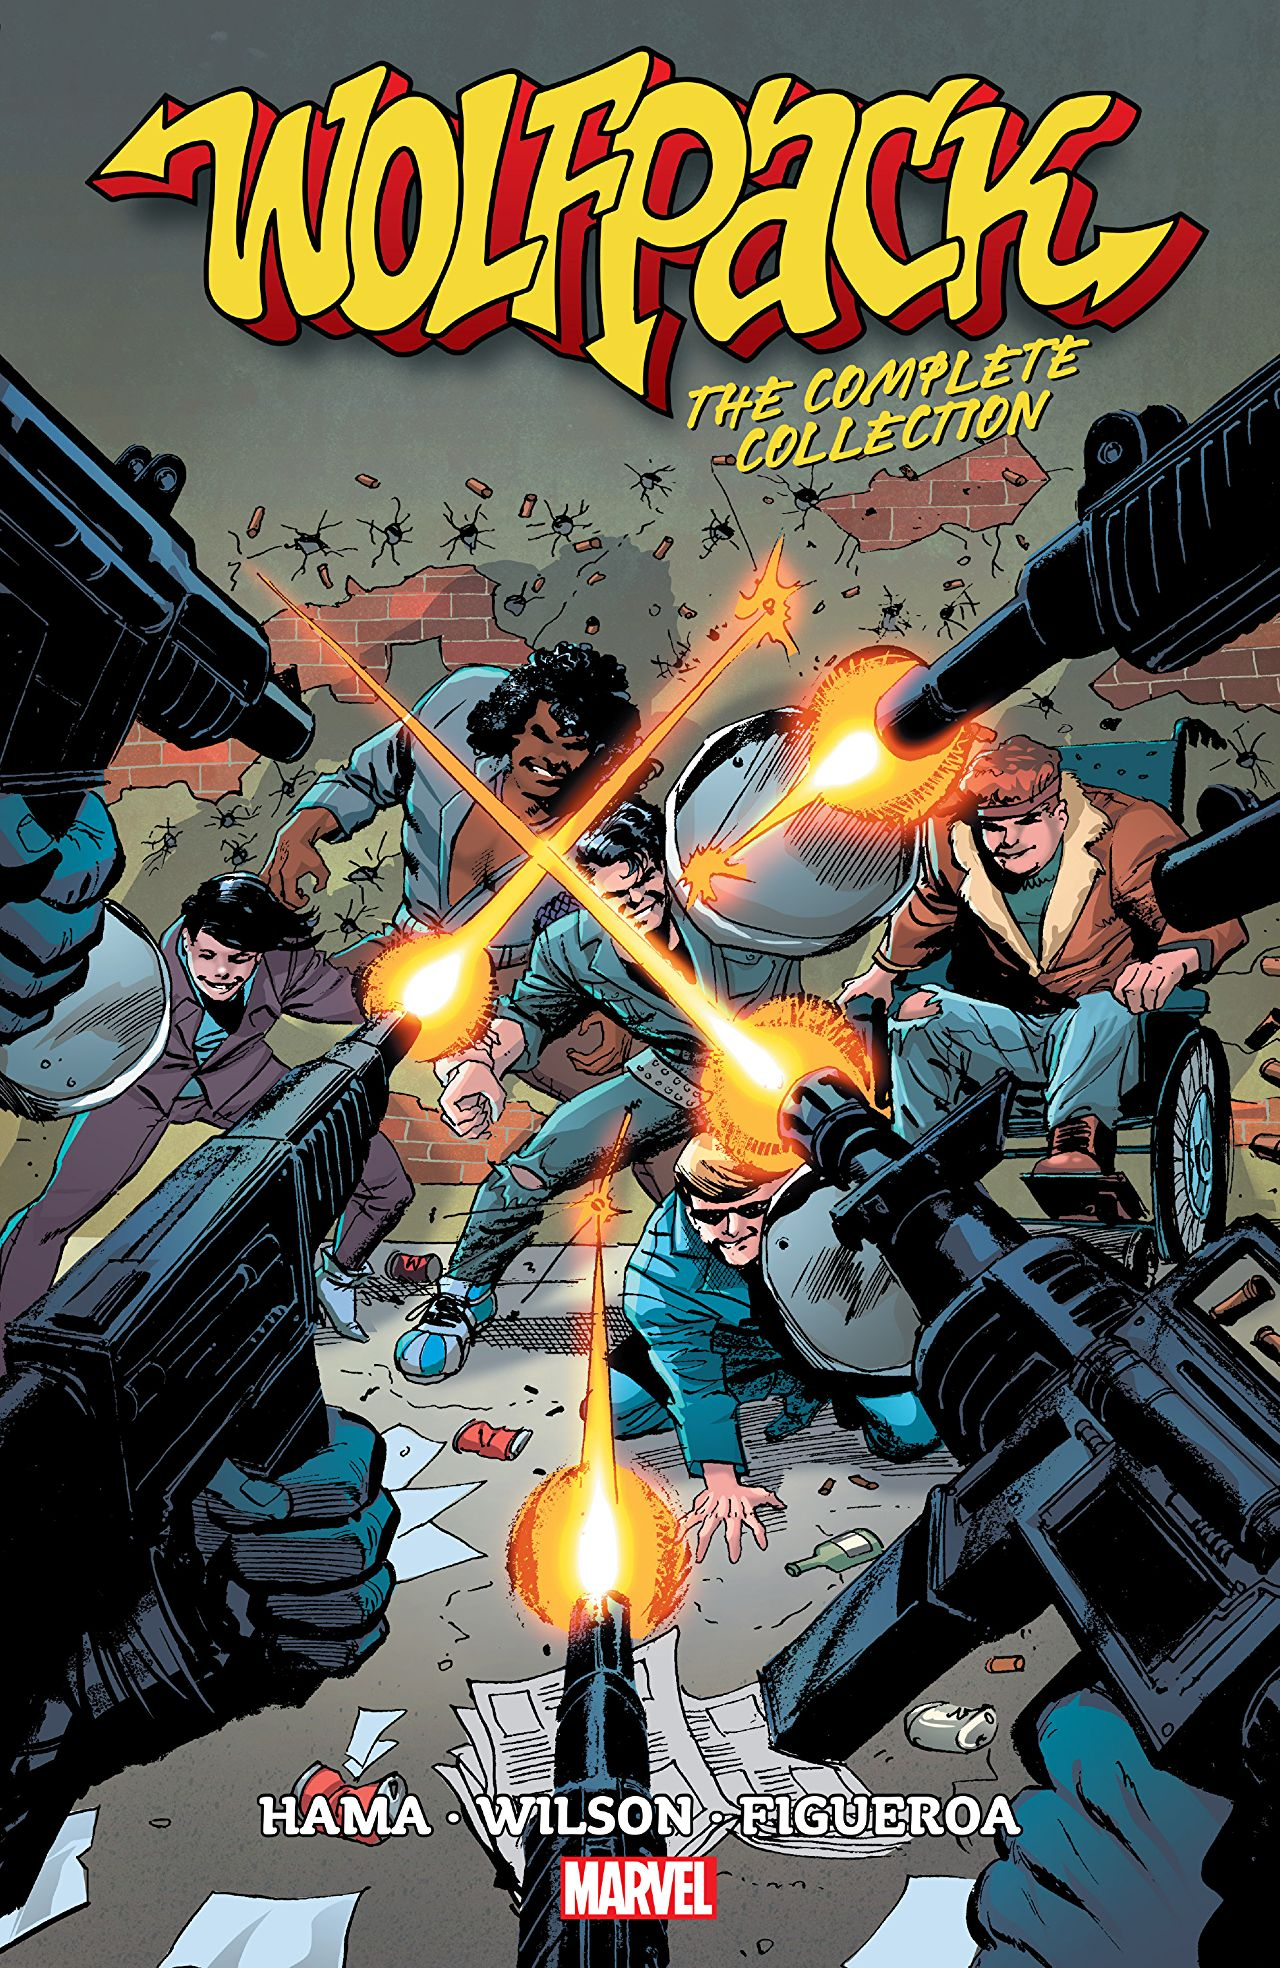 'Wolfpack: the Complete Collection' review: A classic Larry Hama creation